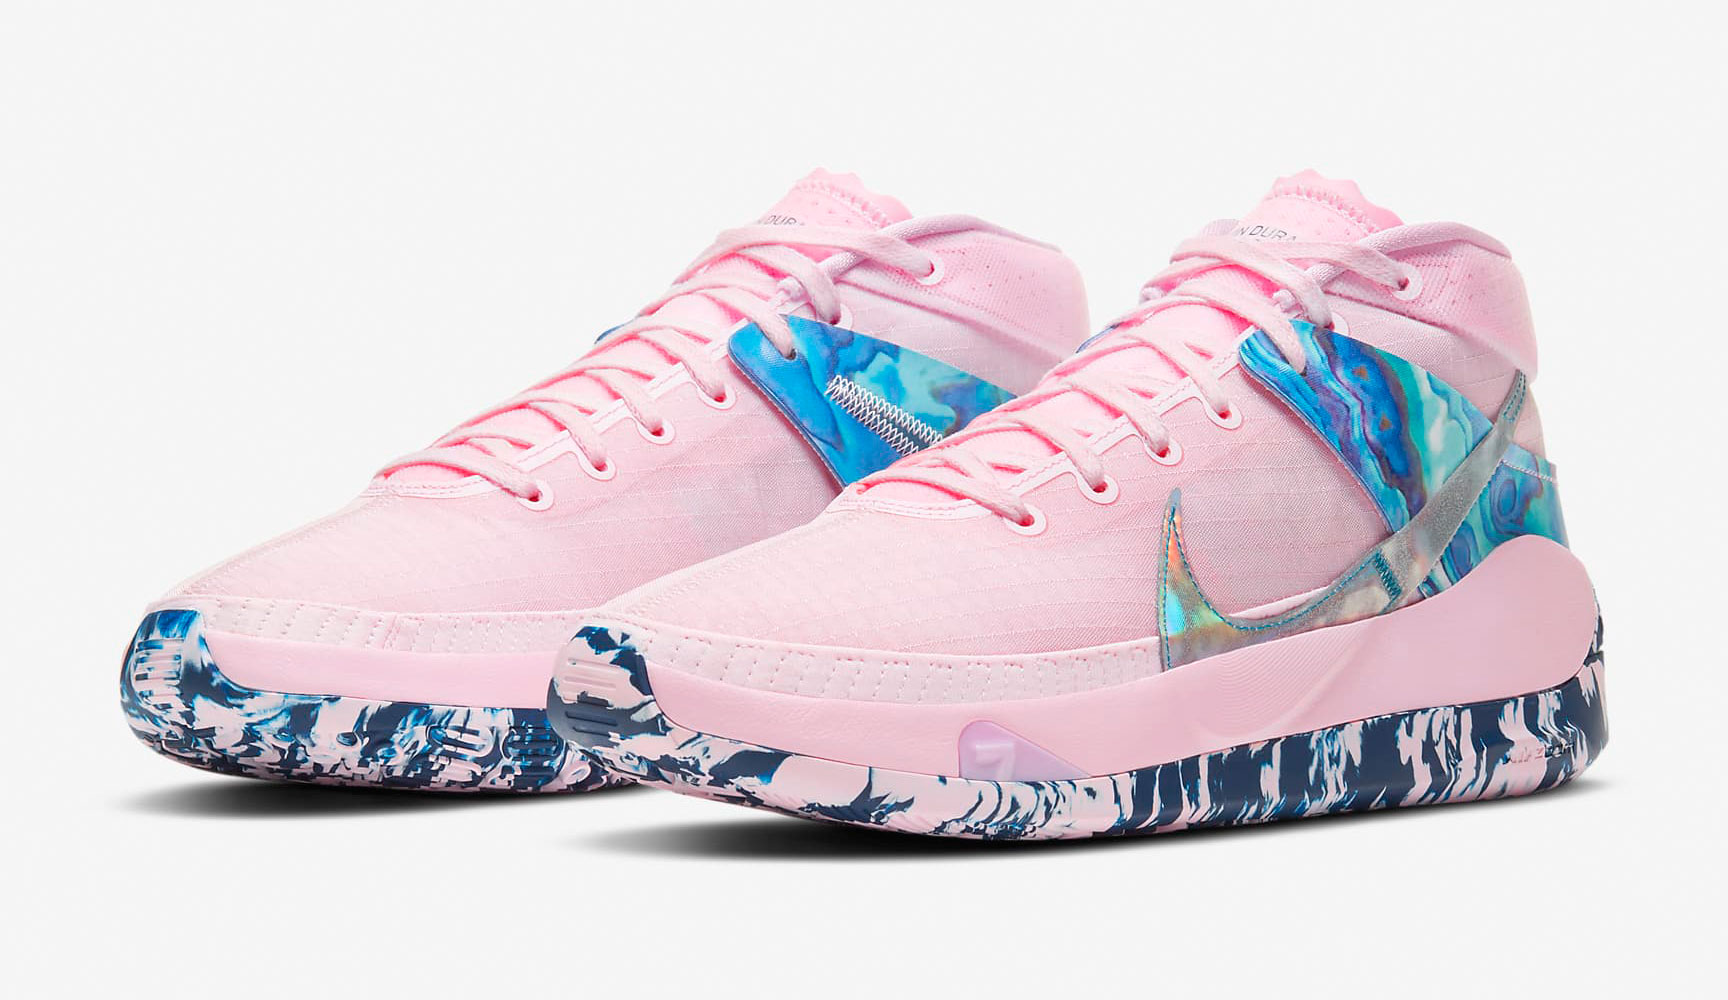 nike-kd-13-aunt-pearl-where-to-buy